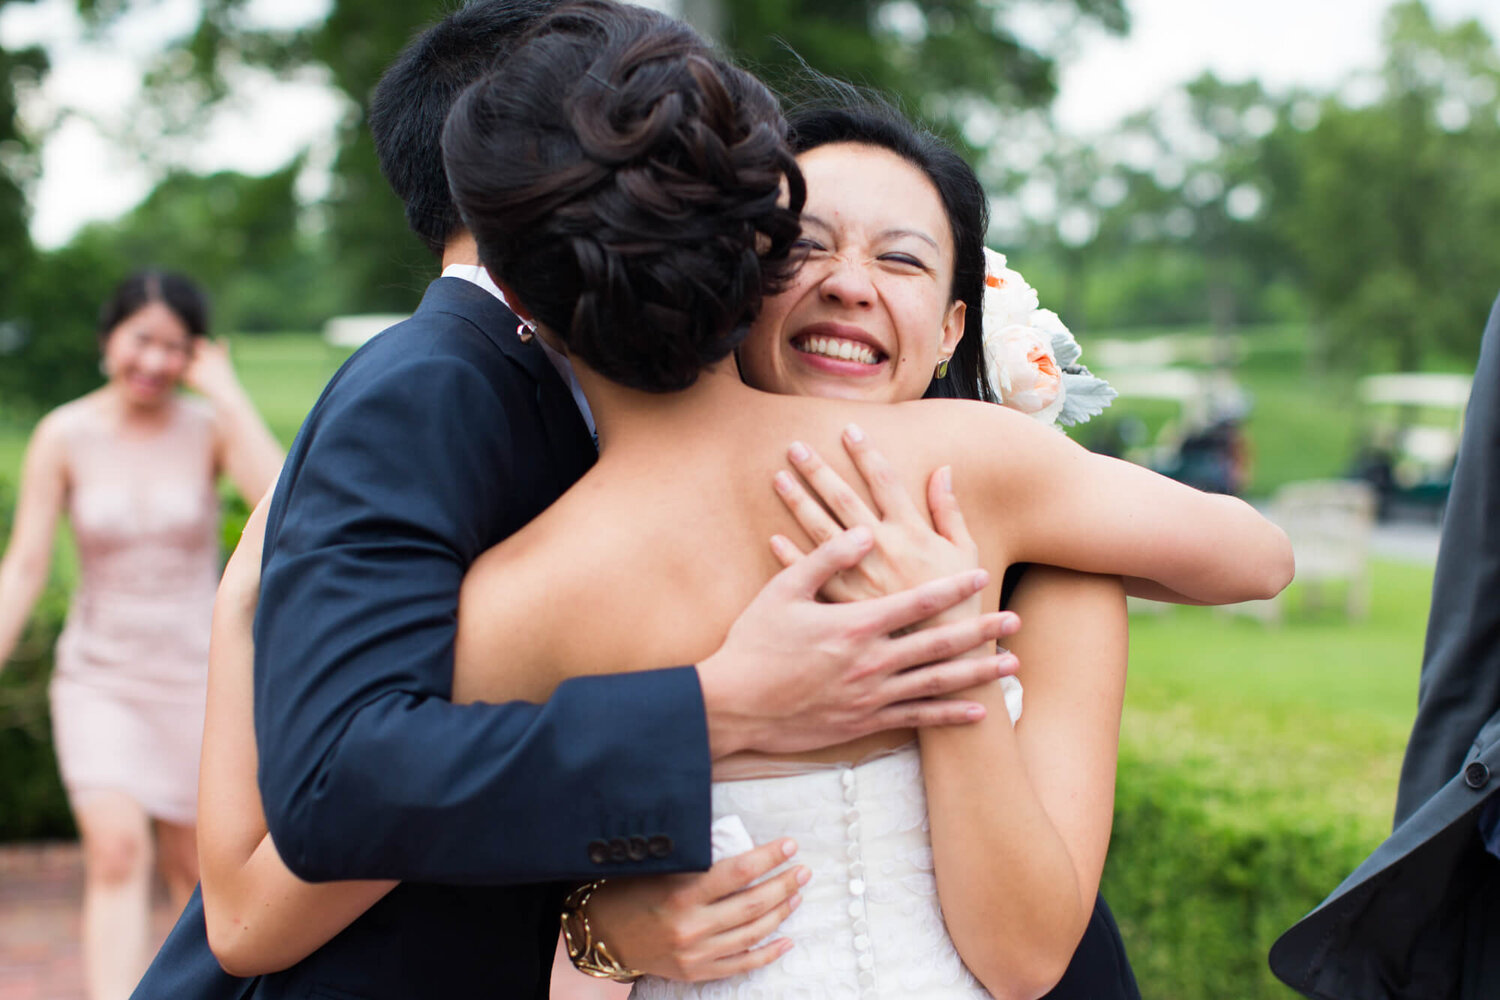 01-old-warson-st-louis-wedding-guests-hugging-bride.jpg